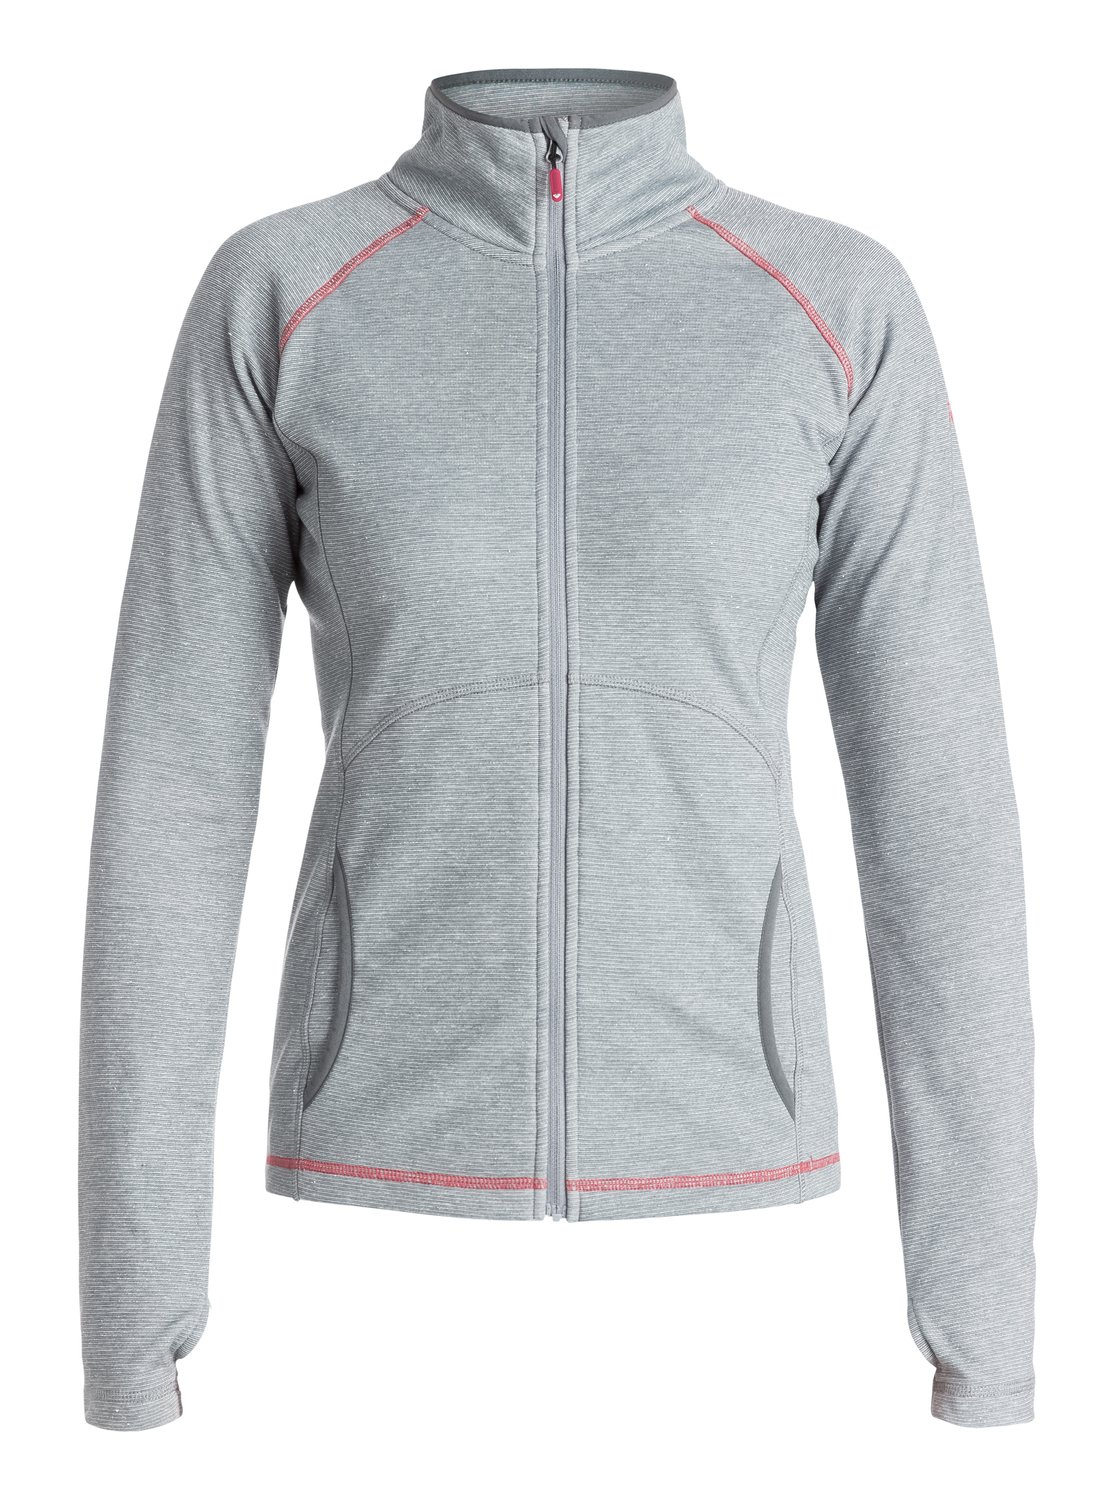 Куртка на молнии Harmony LurexThe Harmony Lurex zip-up technical jacket for women will have you sparkling on the slopes with its luxurious lurex stretch weave in silver and heather grey. Hand warmer pockets, contrast flatlock stitch details and thumbholes on the cuffs make this the go-to-piece for stylish layering.<br>